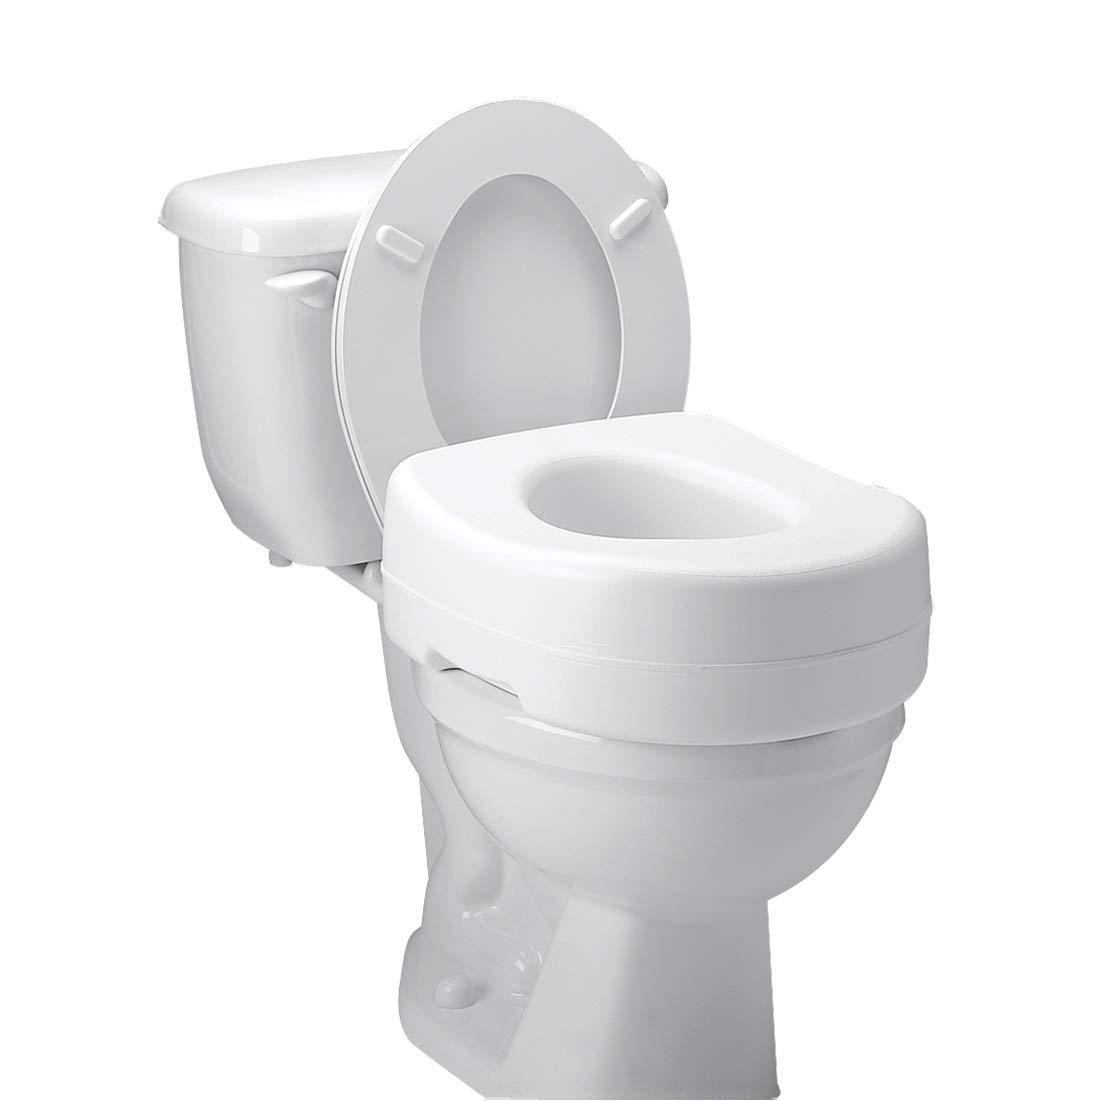 Carex Toilet Seat Riser - Adds 5.5 Inches of Height to Toilet - Raised Toilet Seat with 300 Pound Weight Capacity - Slip-Resistant